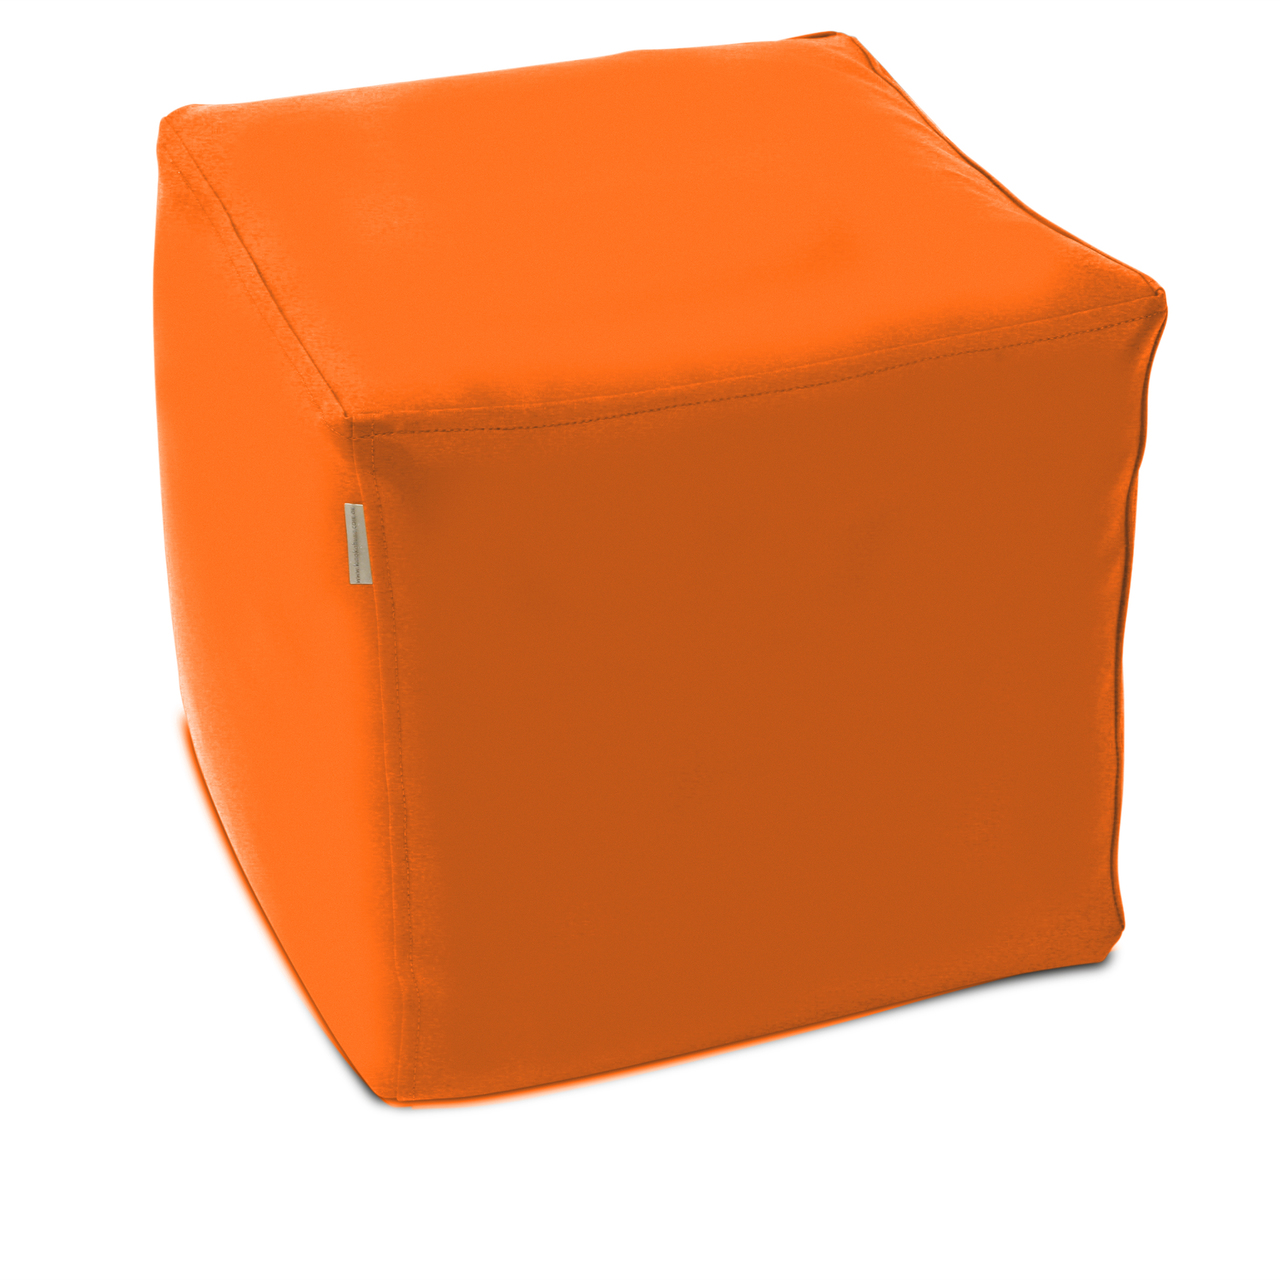 Classic Cube Poof in orange